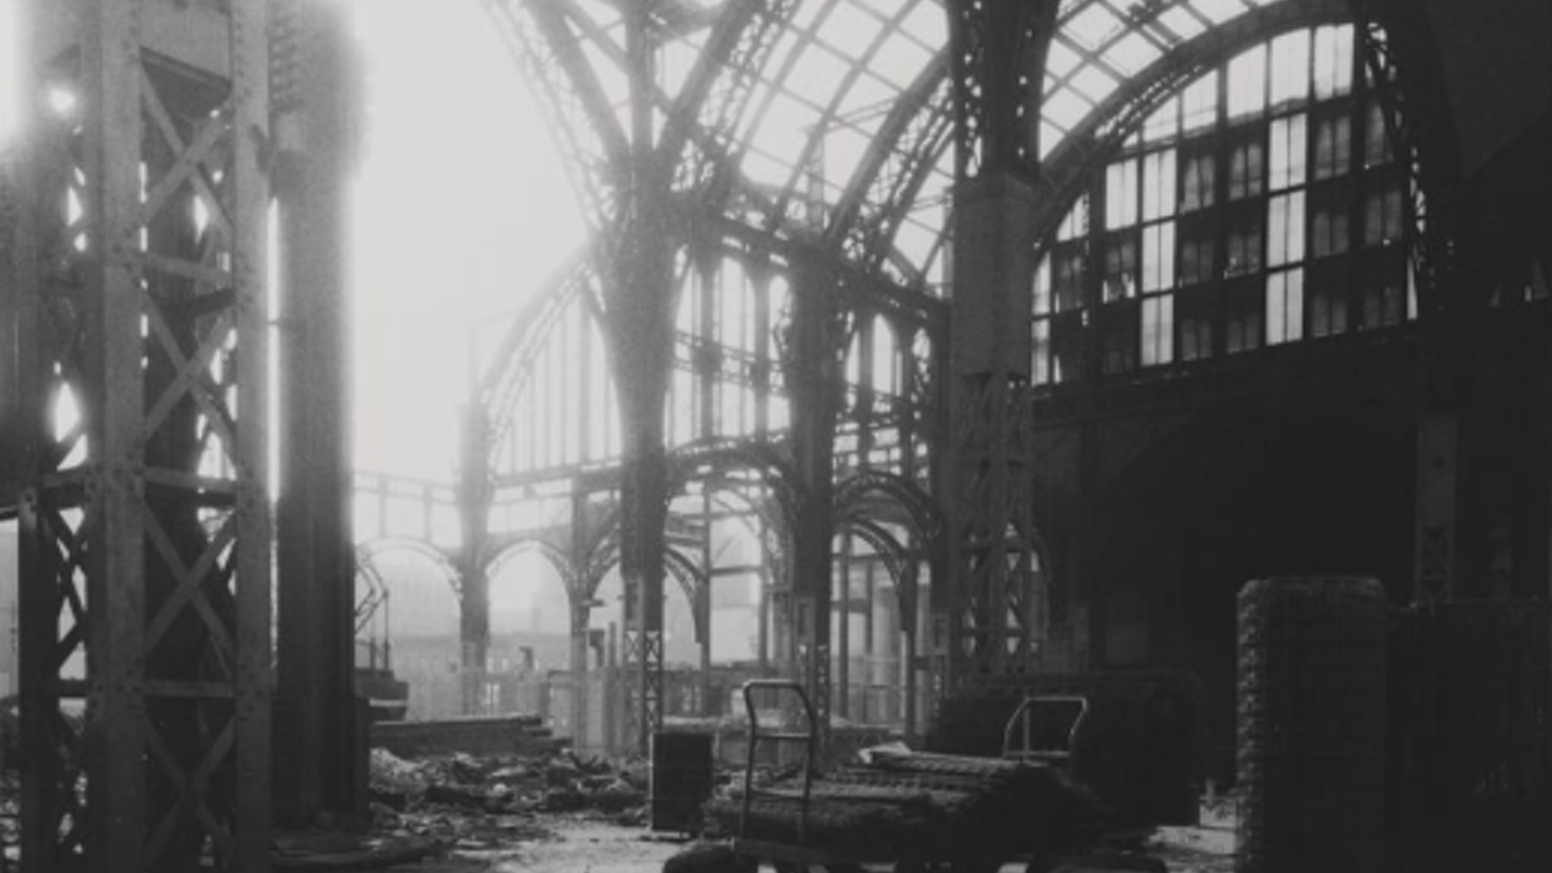 A play that uses photography to tell the story of a friendship forged during the demolition of New York's Pennsylvania Station.